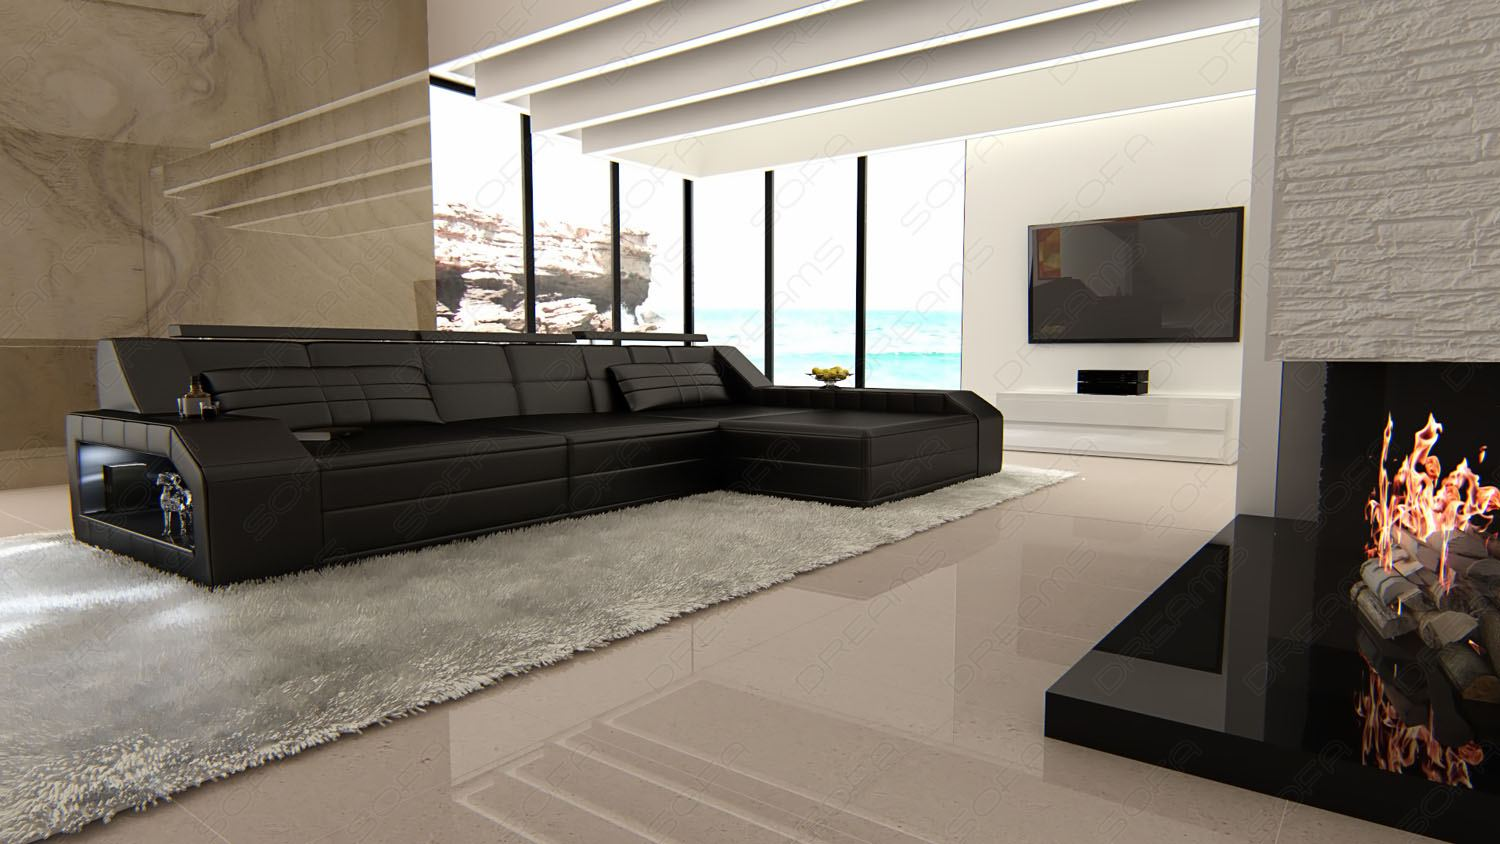 Details about Modern Sectional Corner Leather Sofa Houston L Shape with LED  Lights